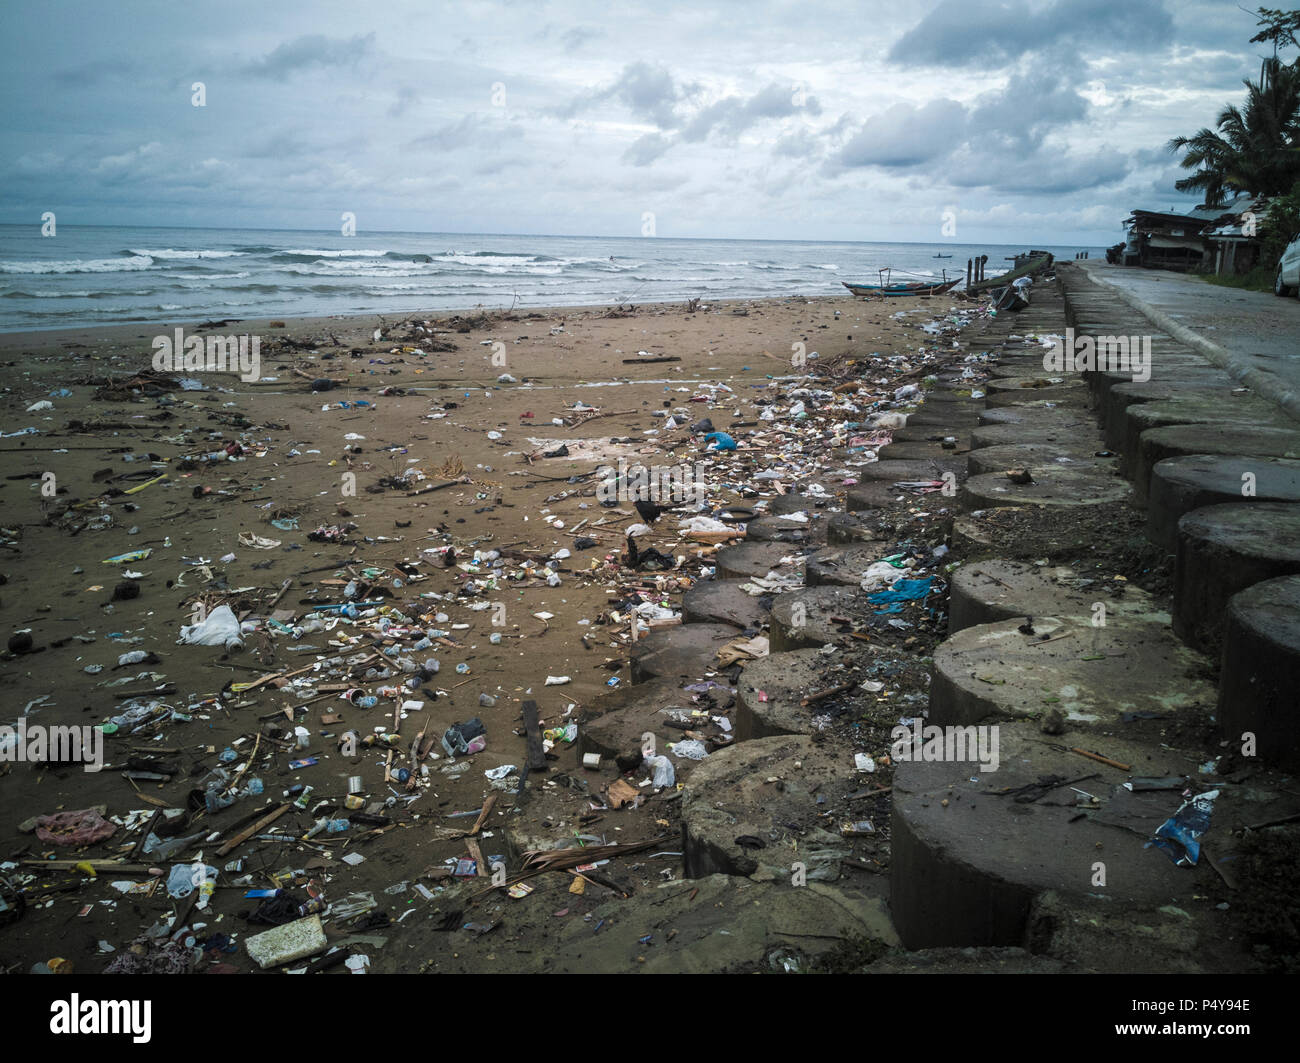 Plastic bags, bottles and other trash polluting beach in Sumatra, Indonesia Stock Photo